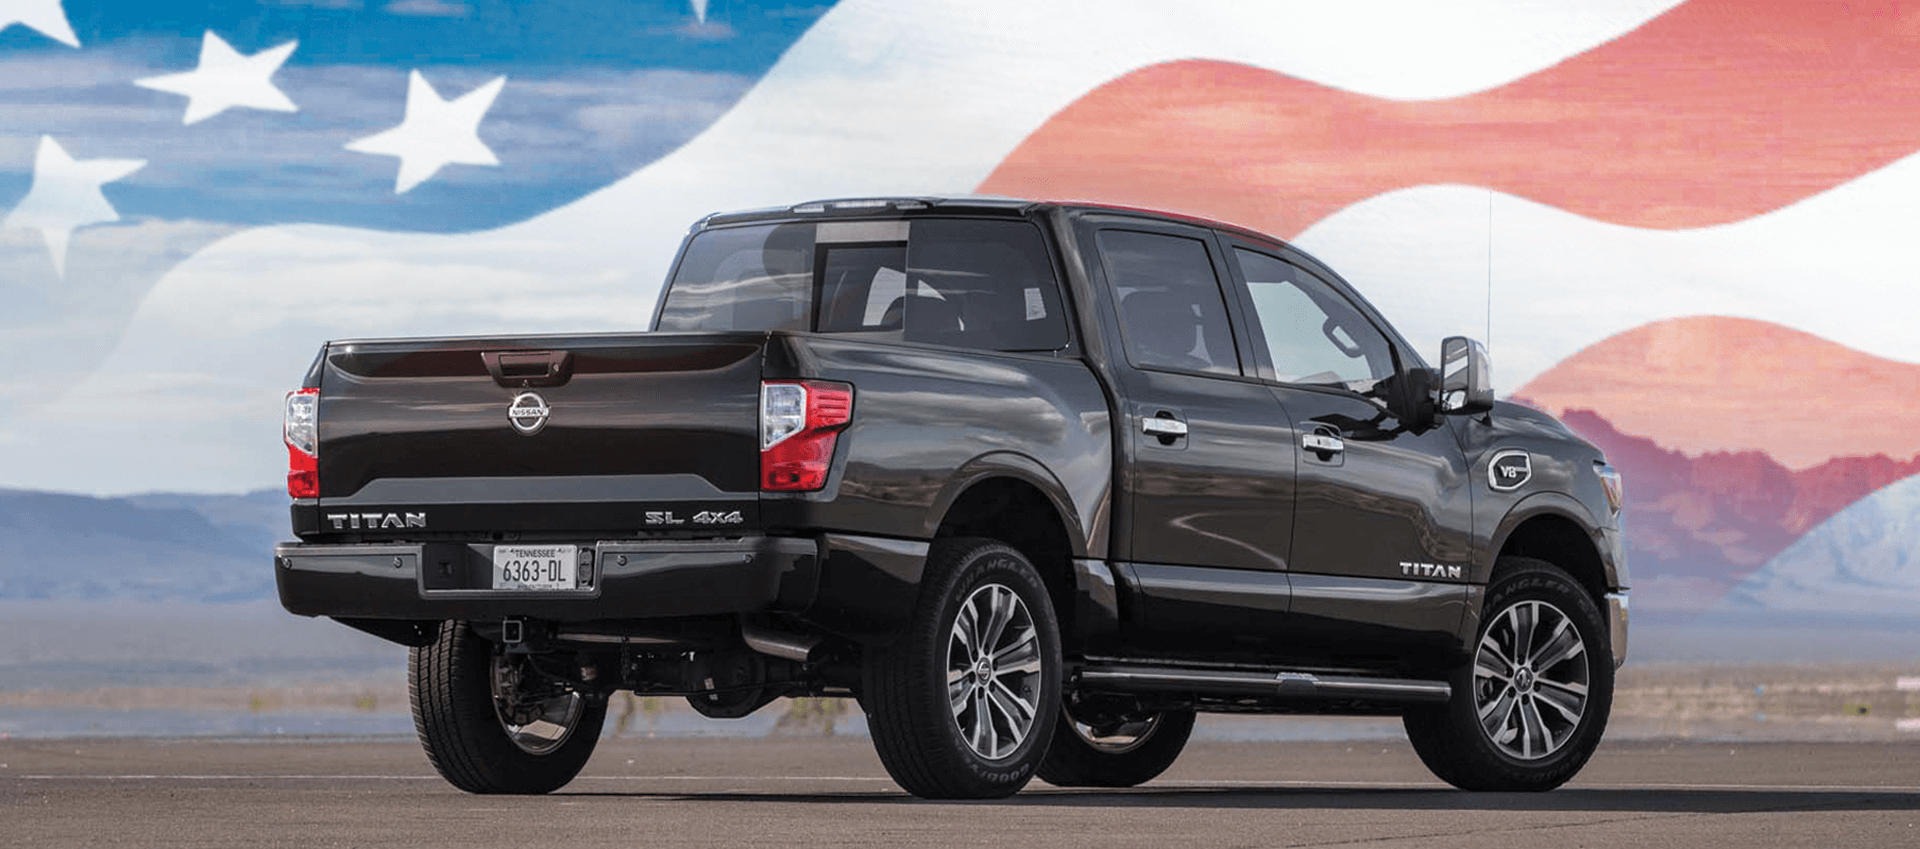 Military Pricing Available for New Nissan Cars from Mossy Nissan